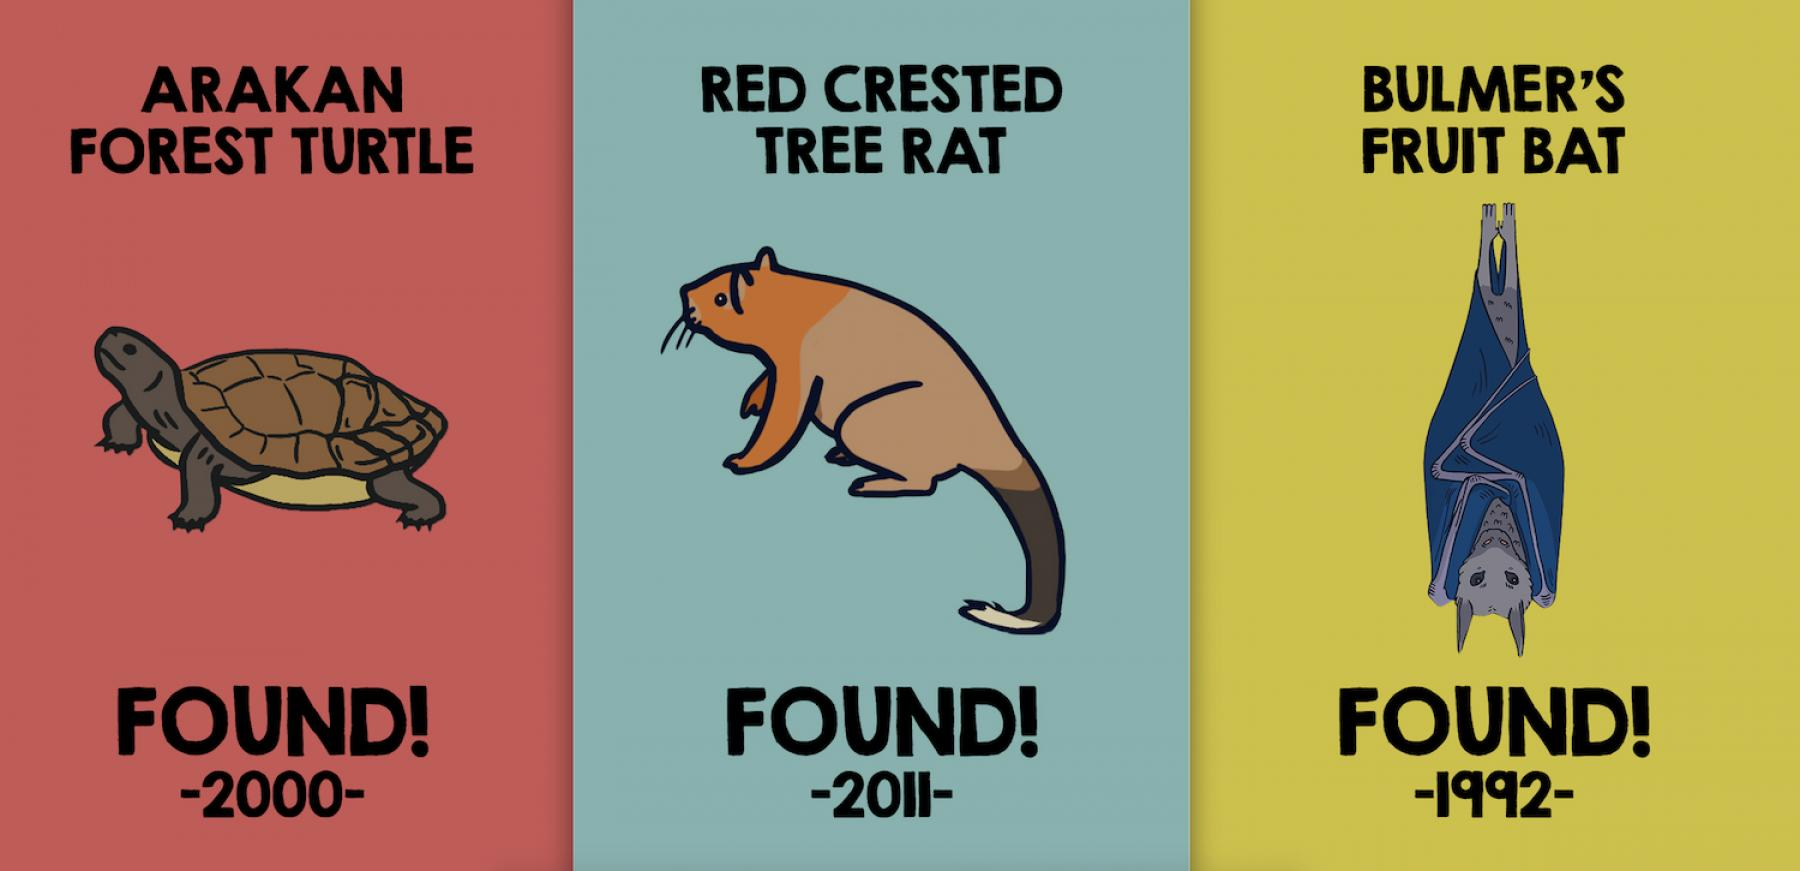 Image for Lost and found: telling the stories of rediscovered species